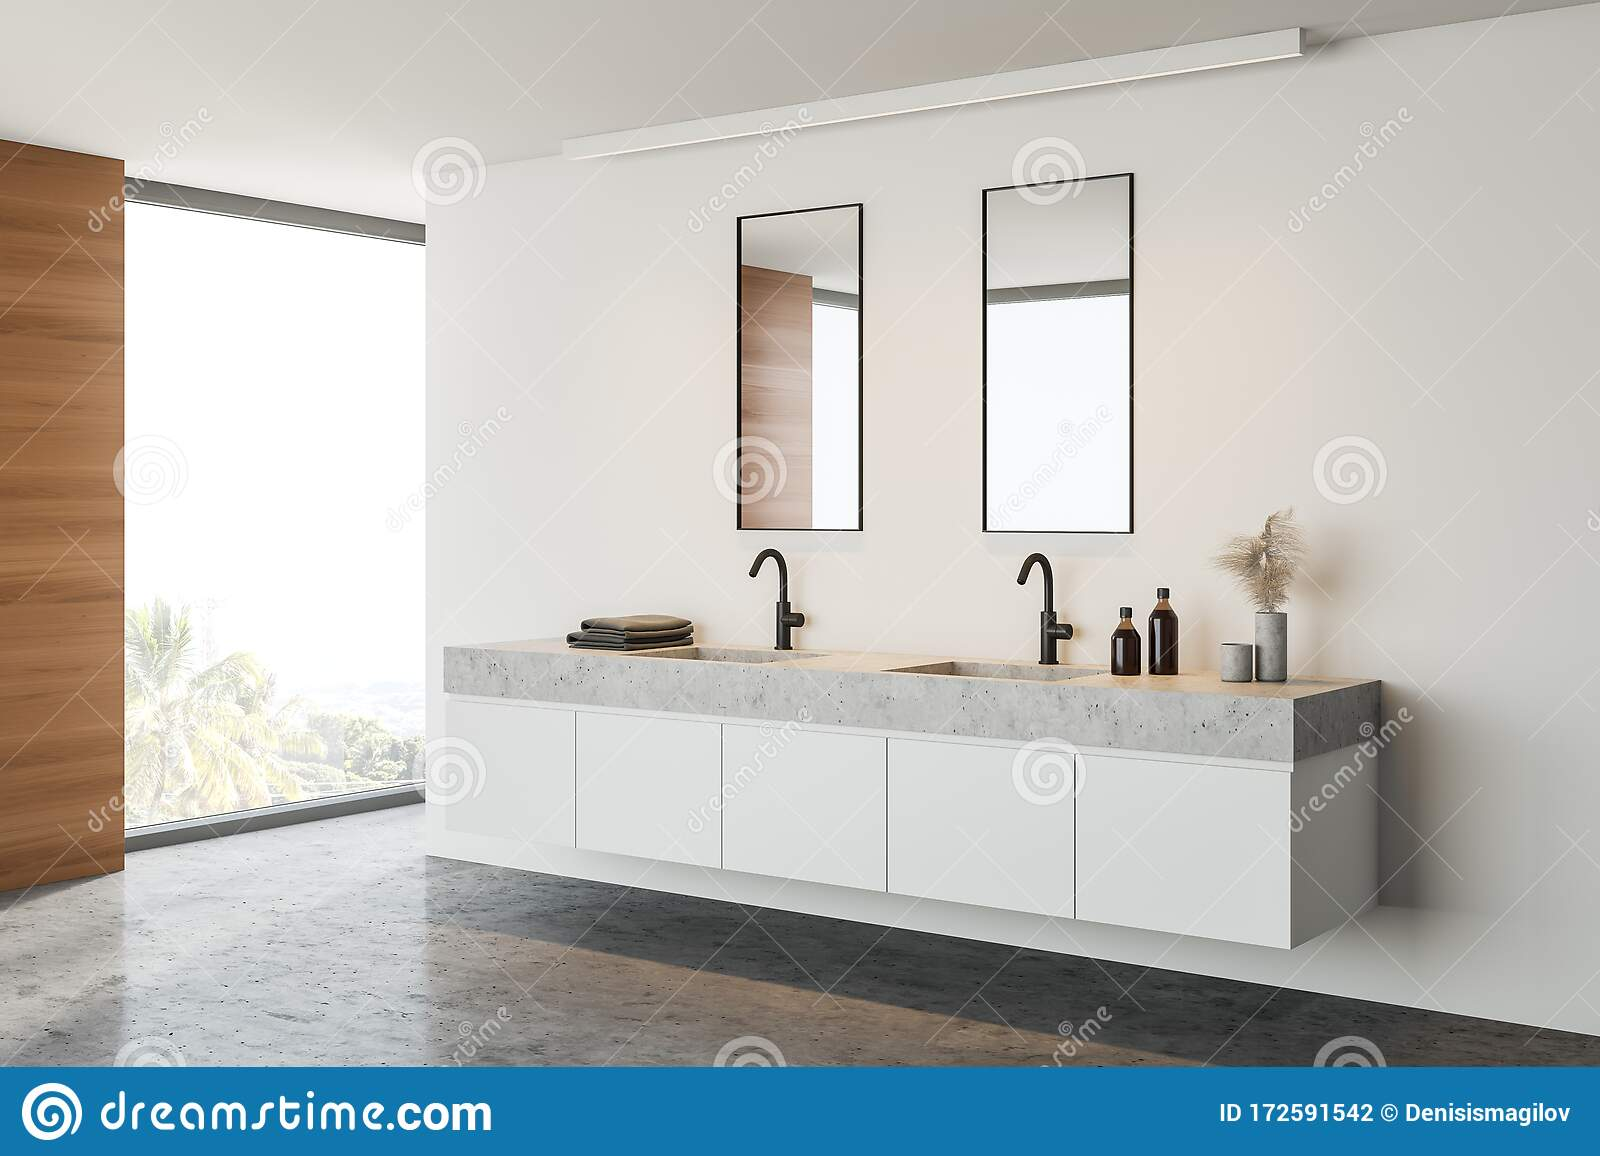 Double Sink In White And Wooden Bathroom Stock Illustration Illustration Of Contemporary Real 172591542